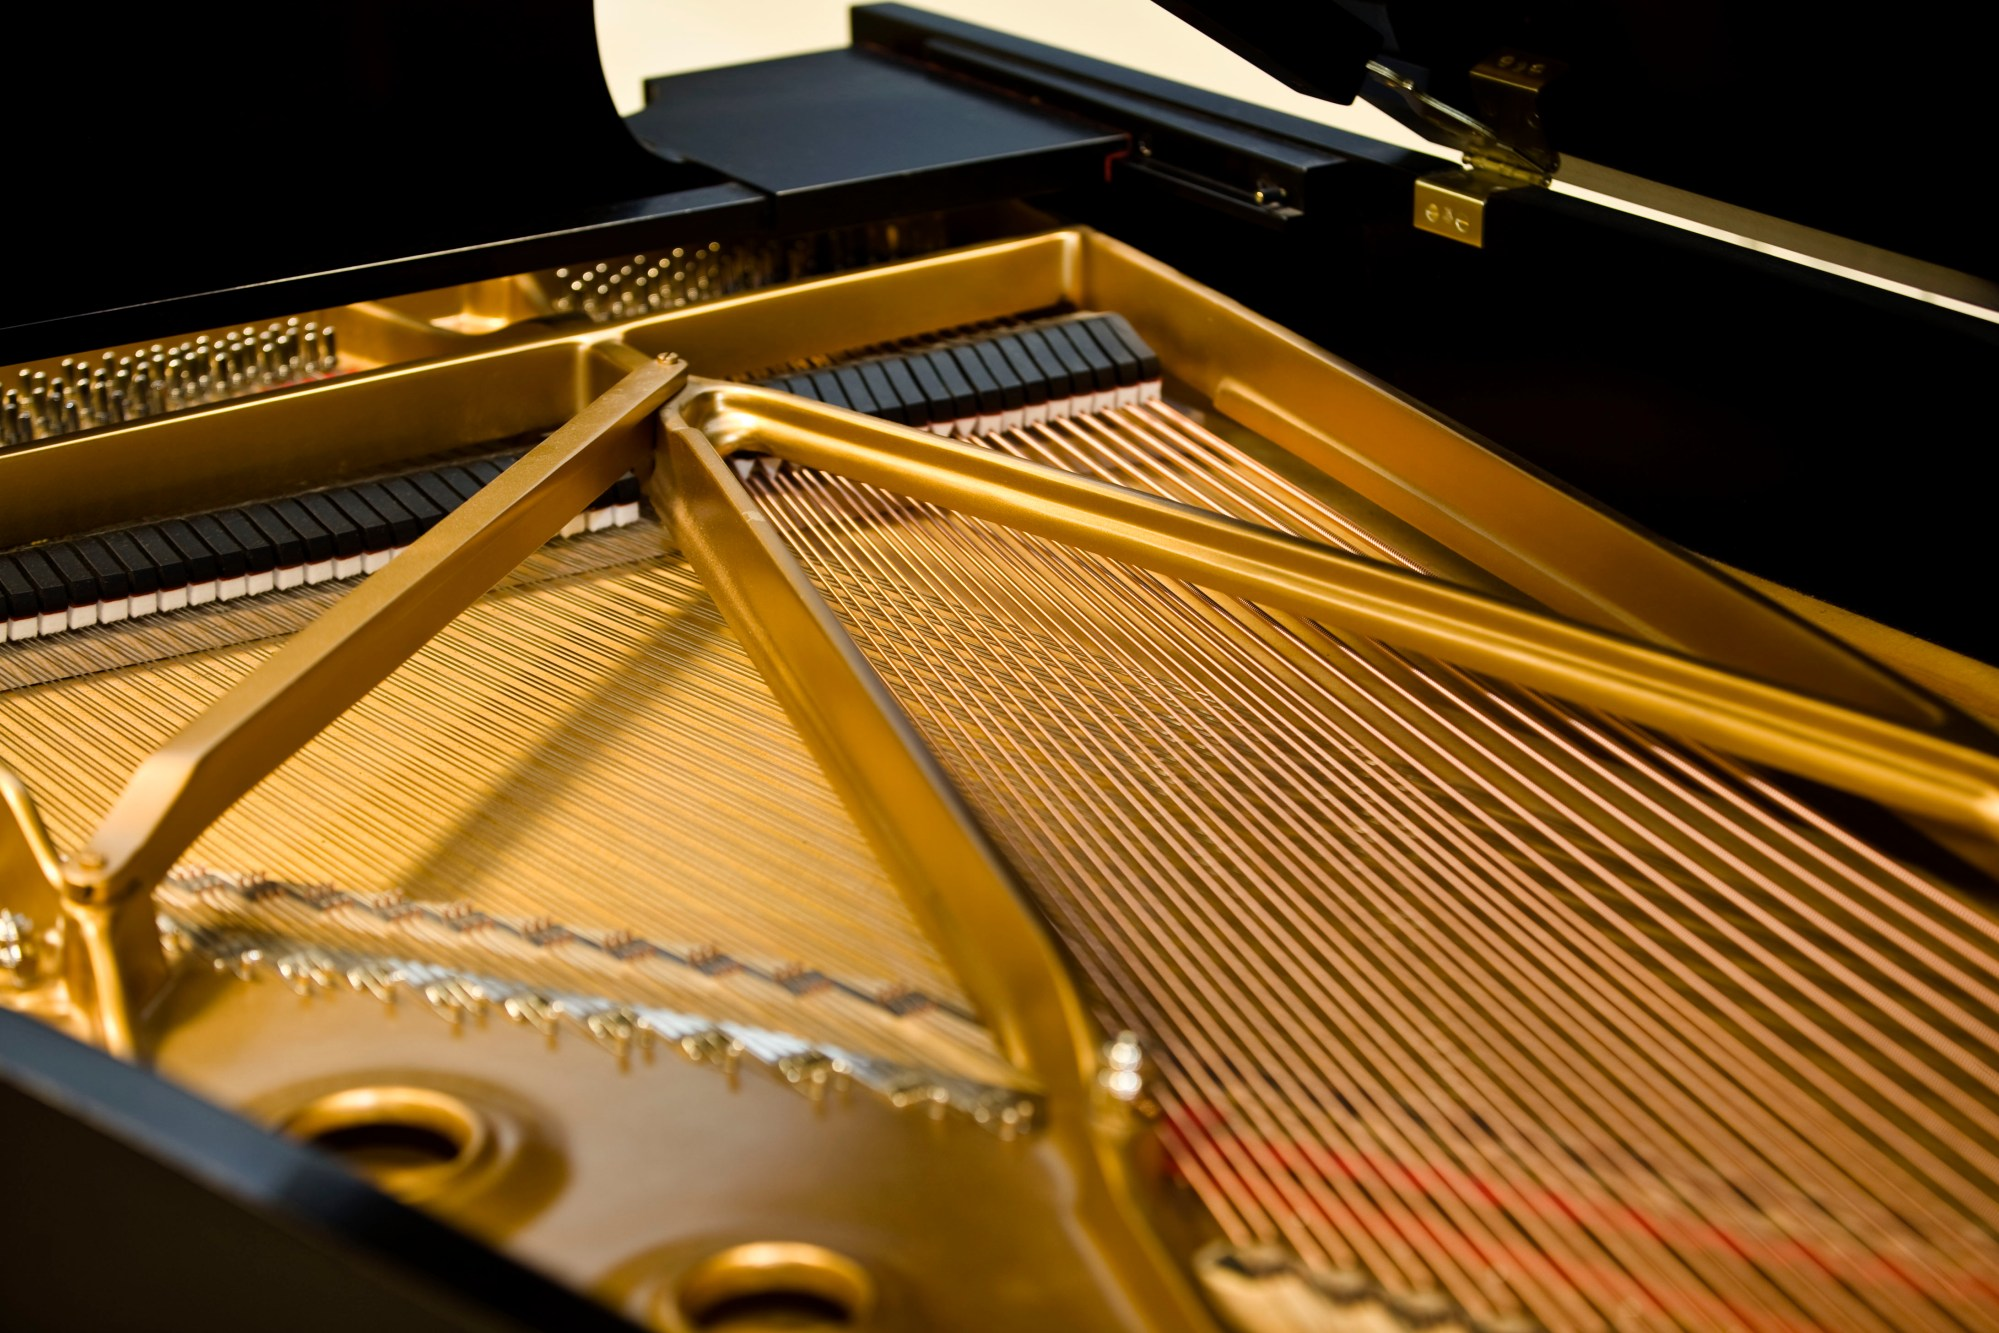 hight resolution of steinway grand piano iron plates and strings